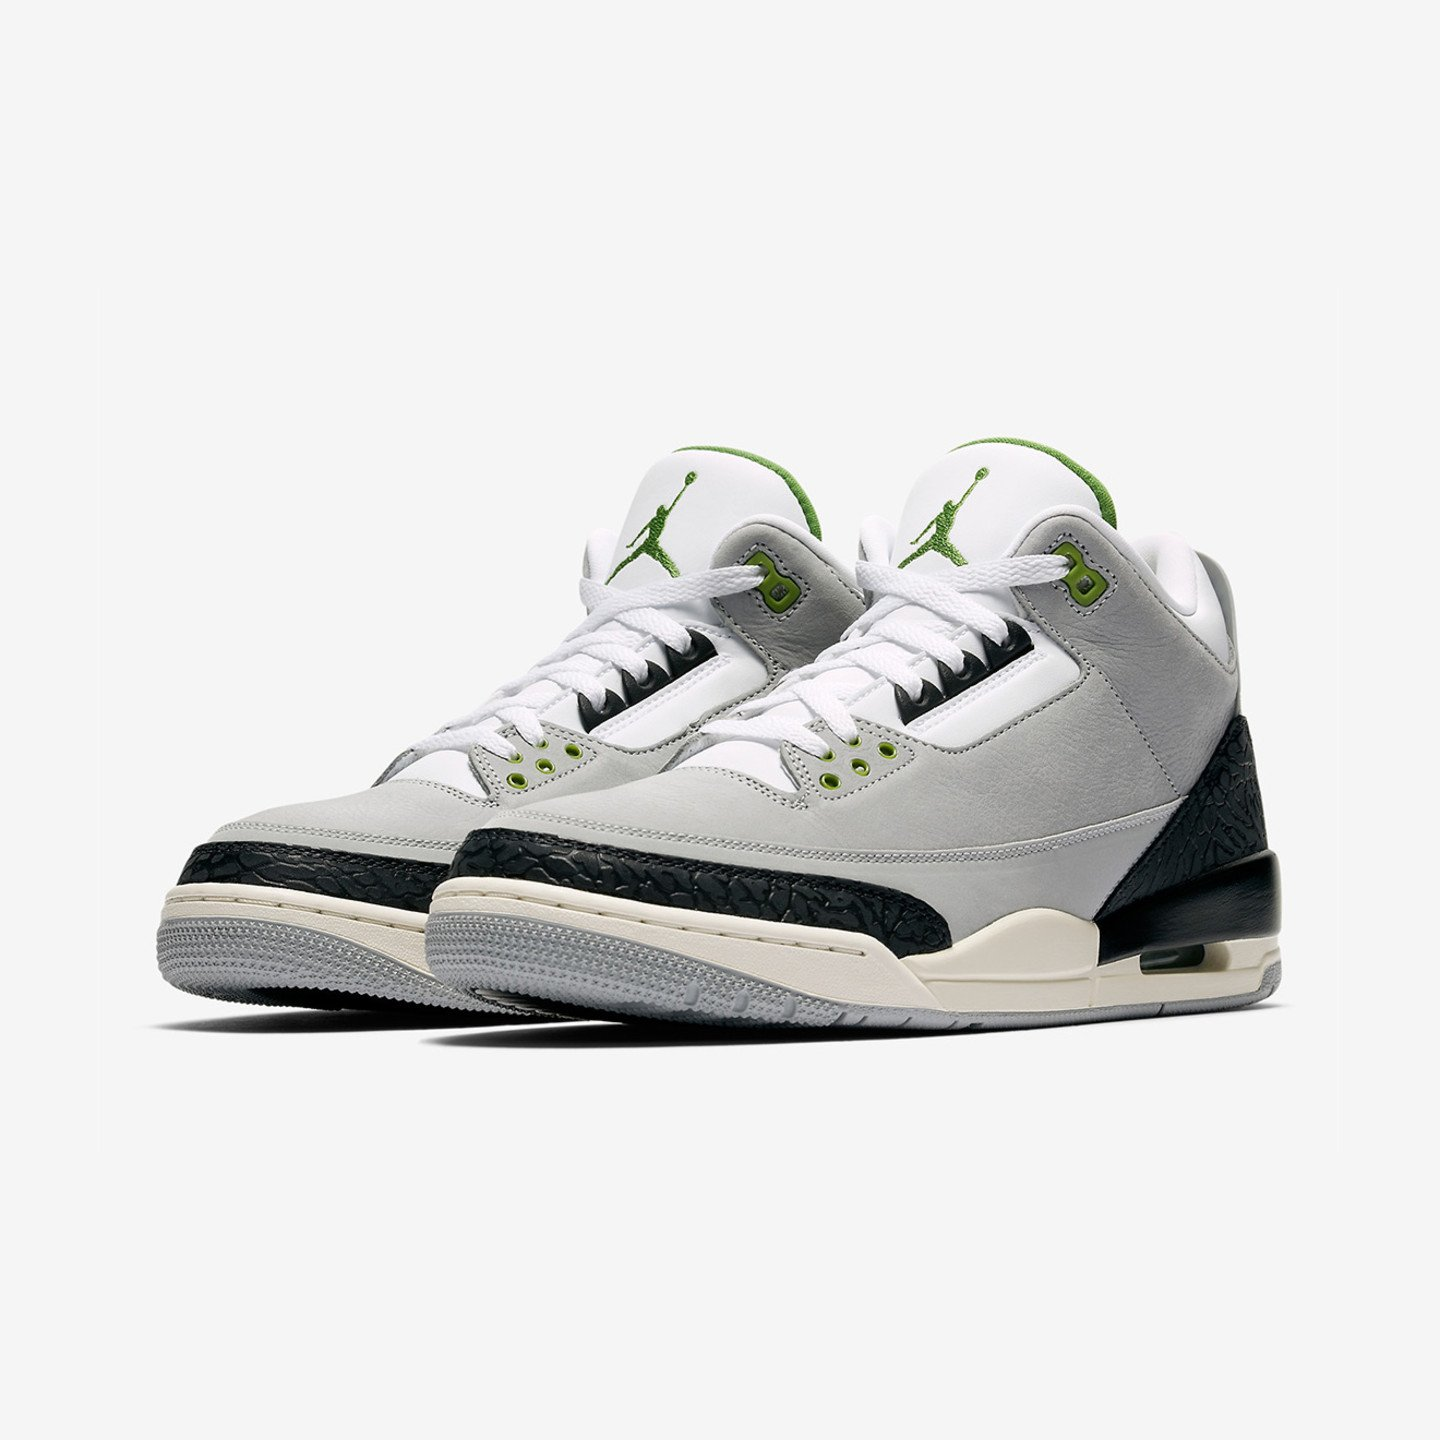 Jordan Air Jordan 3 Retro 'Chlorophyll' Light Smoke Grey / Chlorophyll / Black / White 136064-006